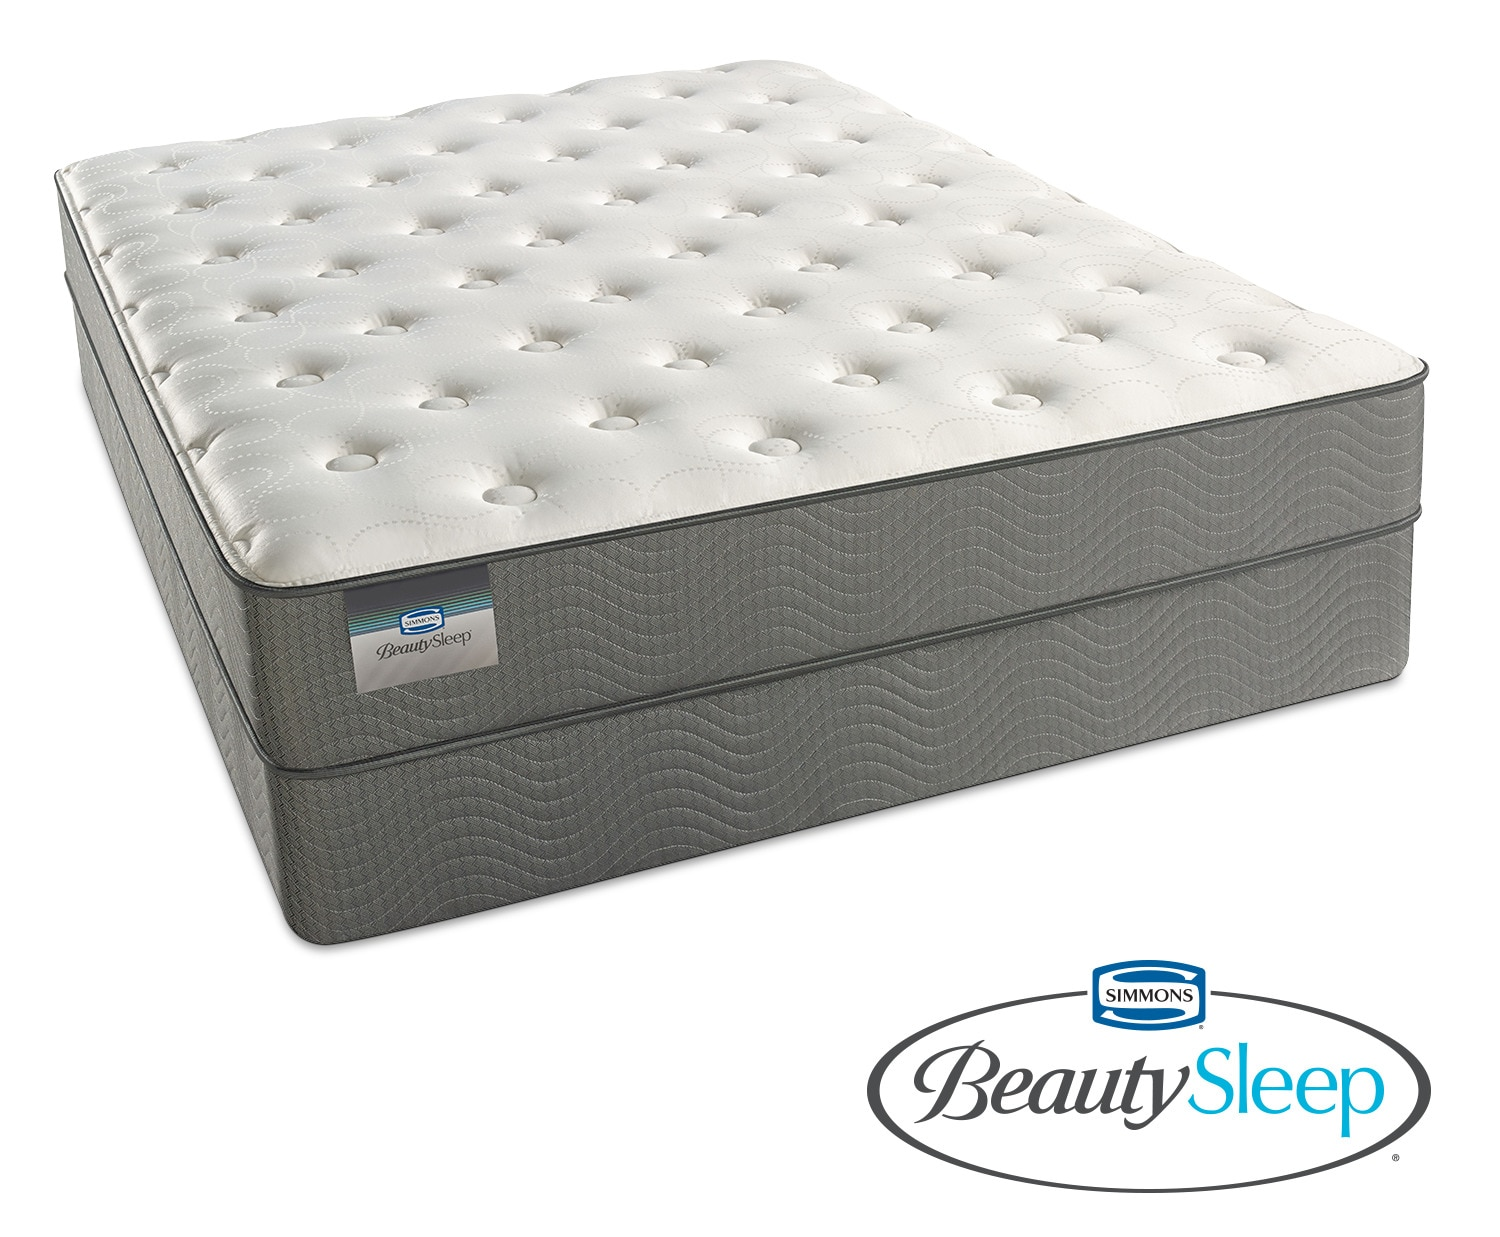 Mattresses and Bedding - Sapphire Blue Luxury Firm Queen Mattress and Foundation Set